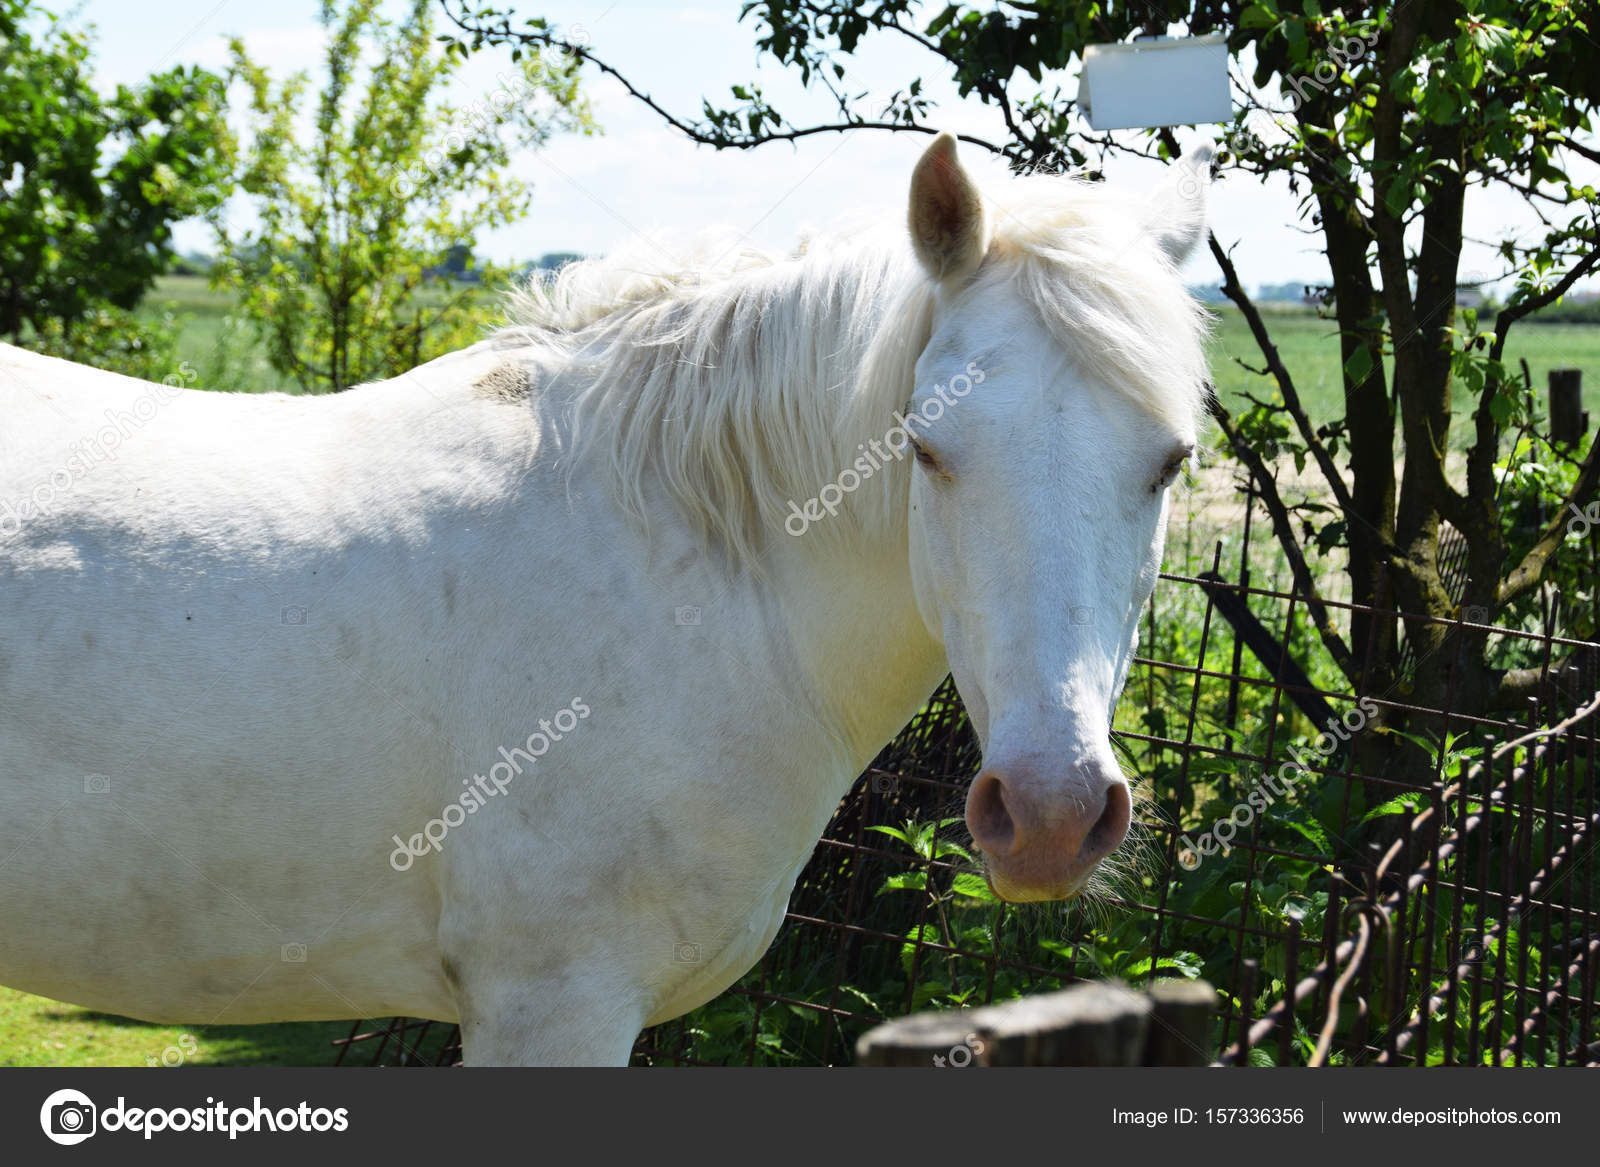 White Beautiful Horse In The Countryside Stock Photo C Kingapl 157336356